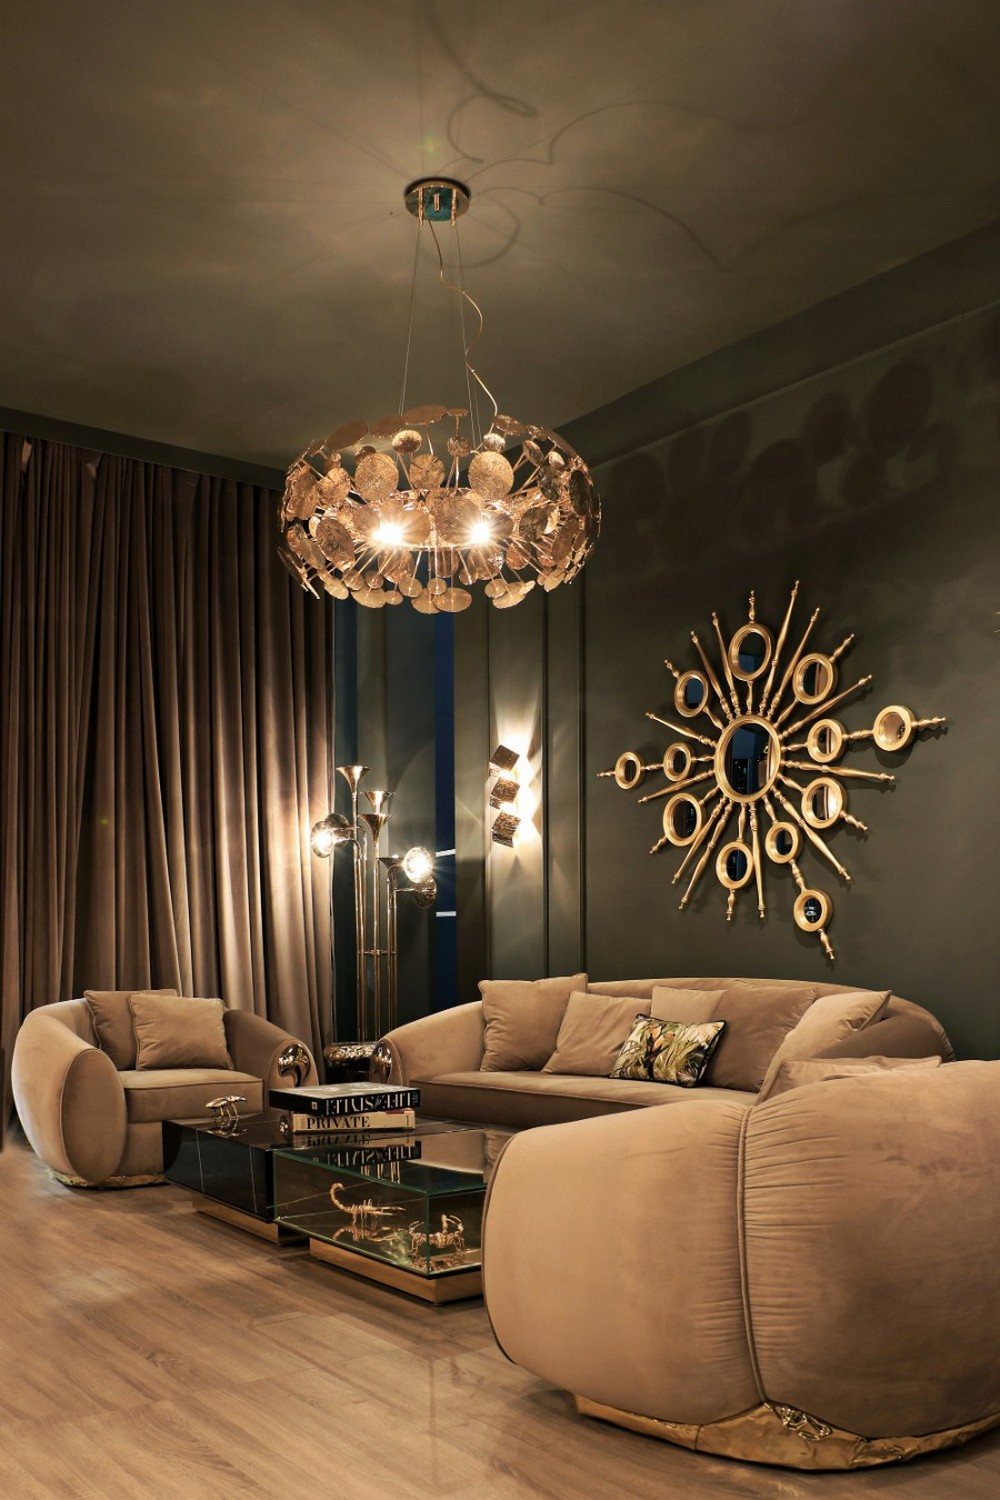 italian interior designers Know more about Italian Interior Designers and their influence The Values of Italian Interior Designers and Their Design Influence 331 1